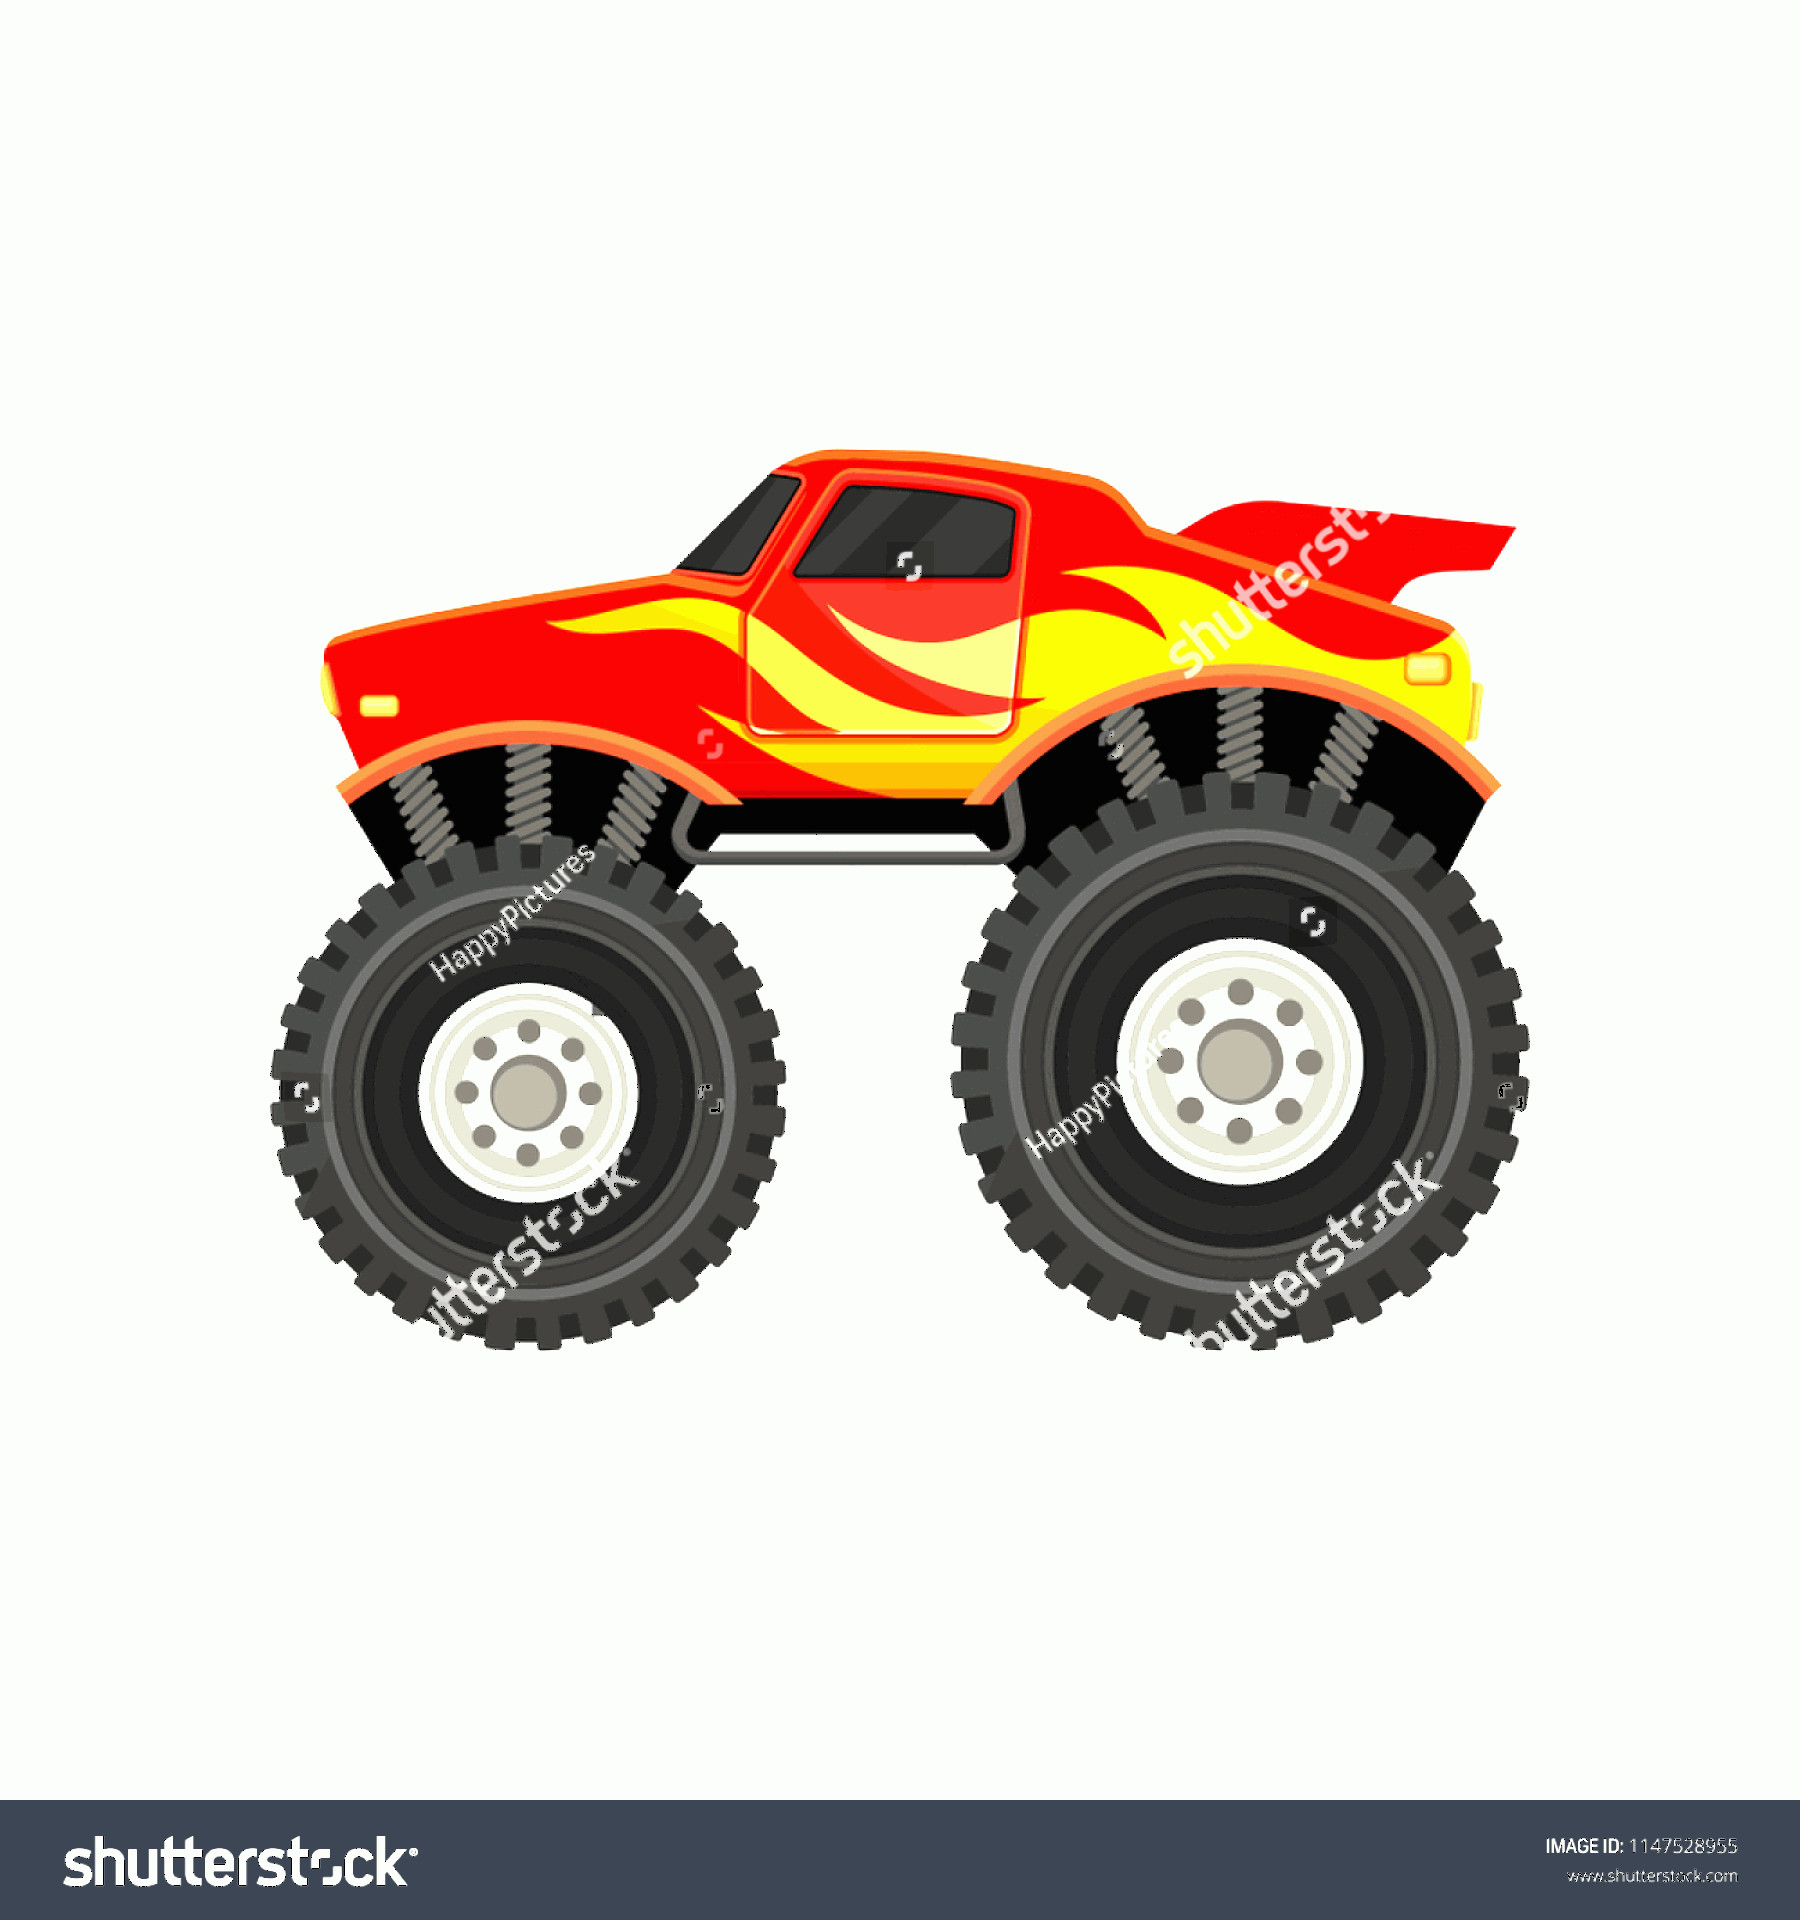 Monster Truck Tires Vector: Flat Vector Icon Red Monster Truck